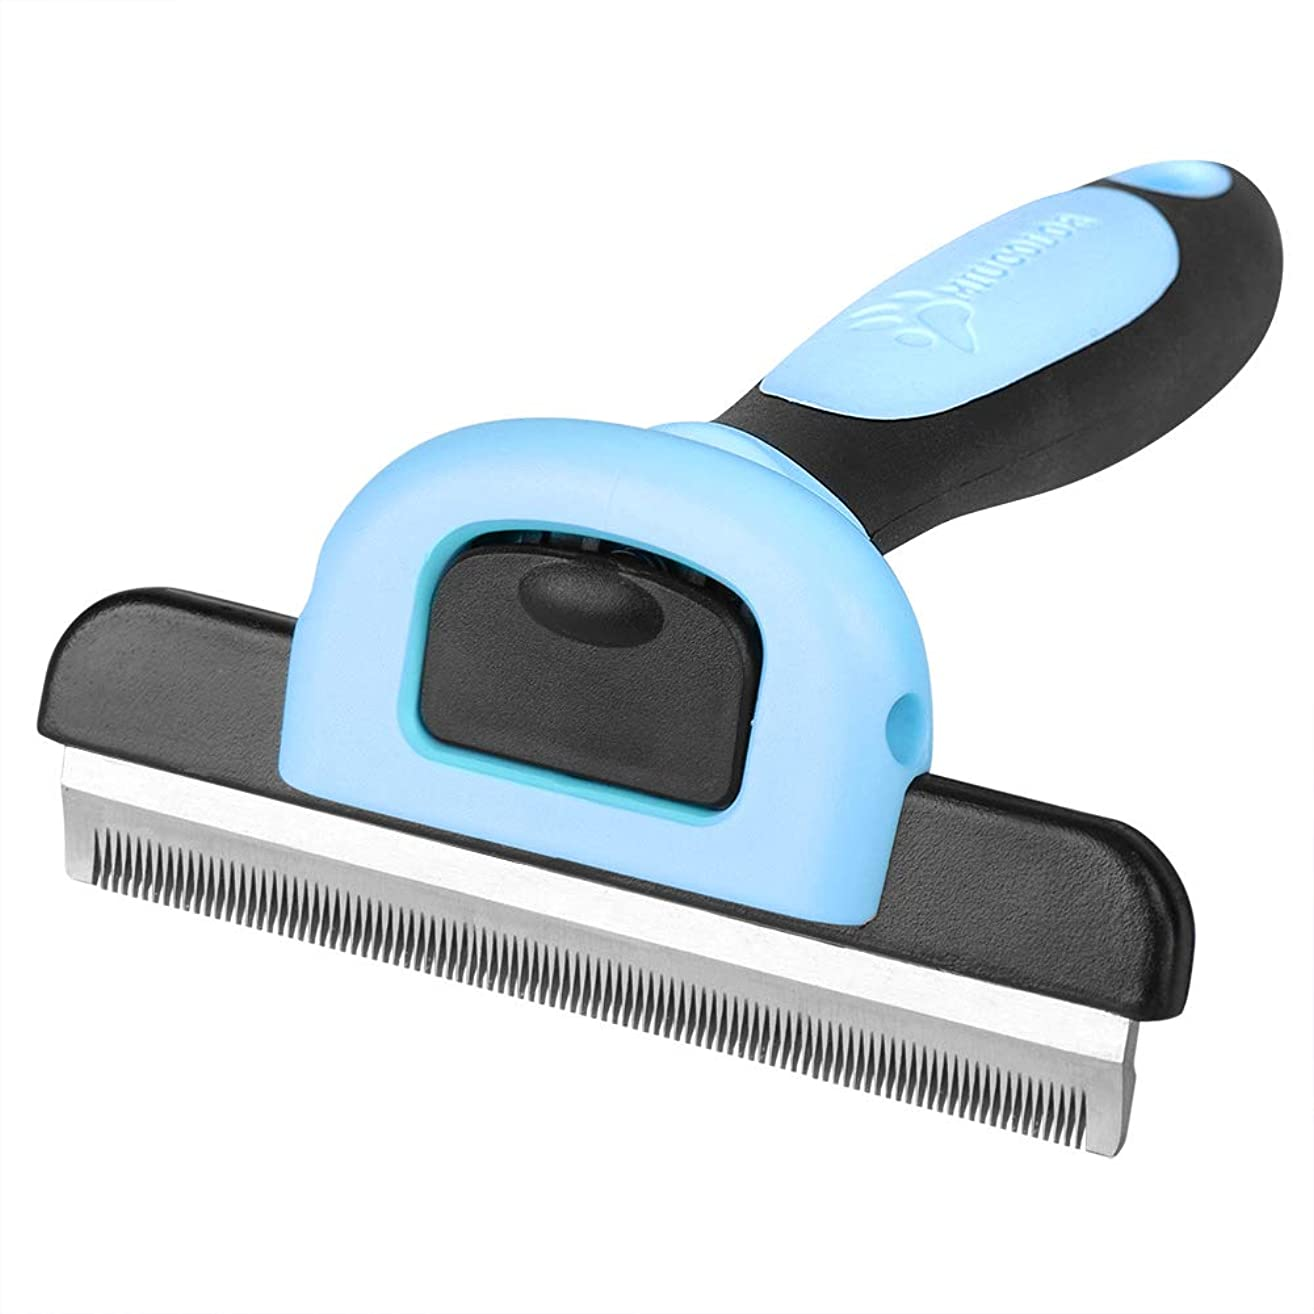 MIU COLOR Pet Deshedding Brush, Professional Grooming Tool, Effectively Reduces Shedding by Up to 95% for Short Hair and Long Hair Dogs Cats